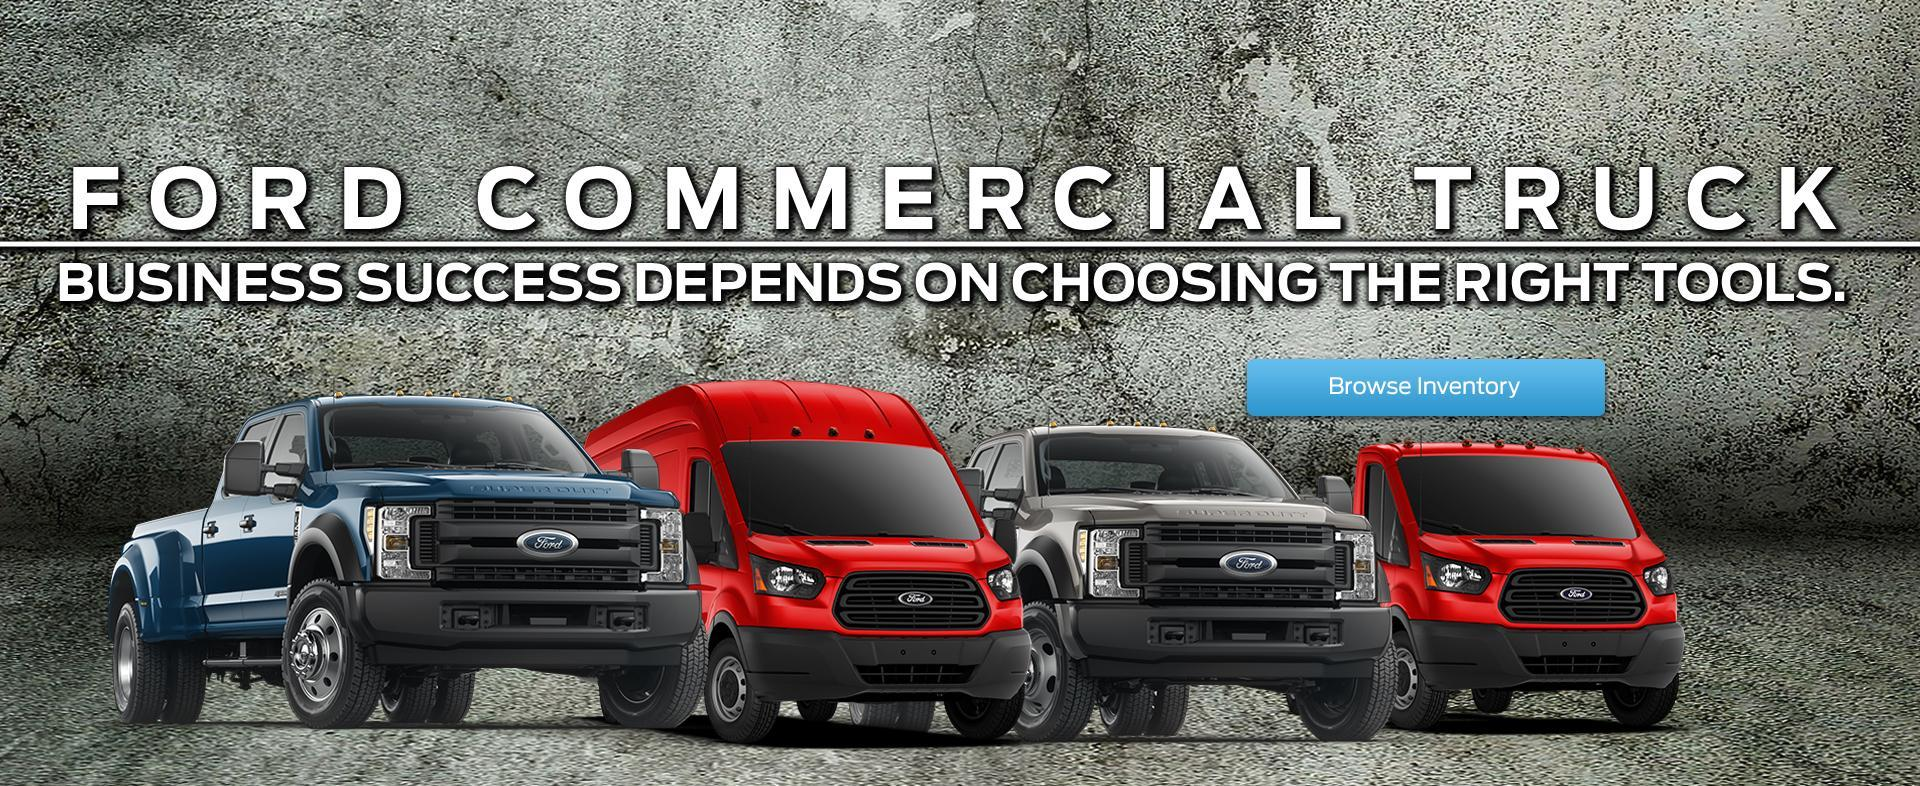 Commercial Fleet trucks multiple